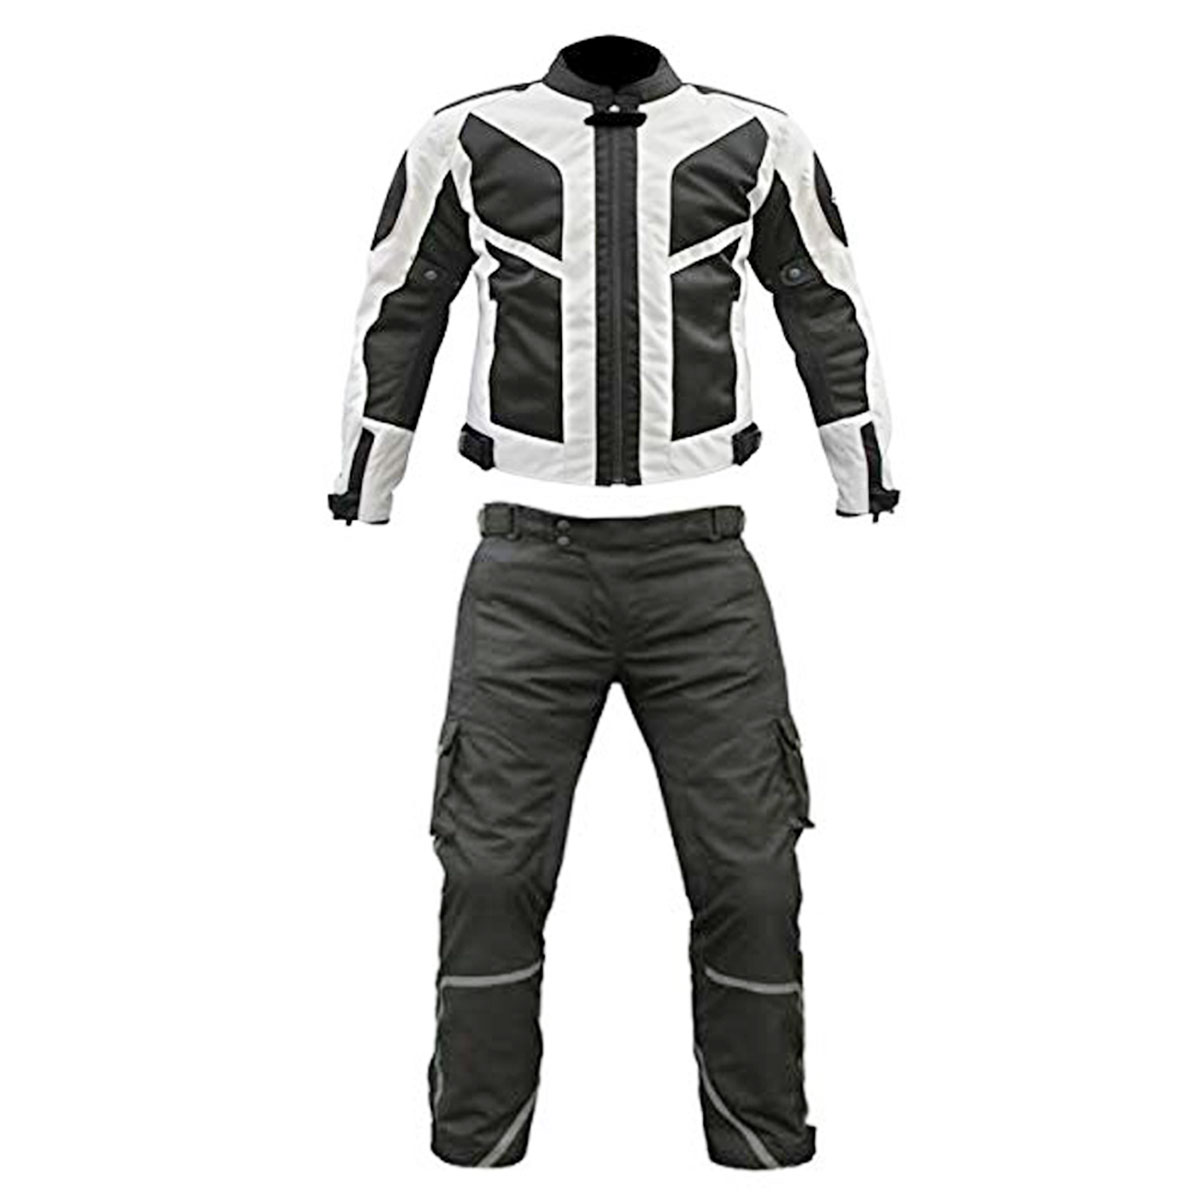 UNIQUE BLACK & WHITE CORDURA SUIT